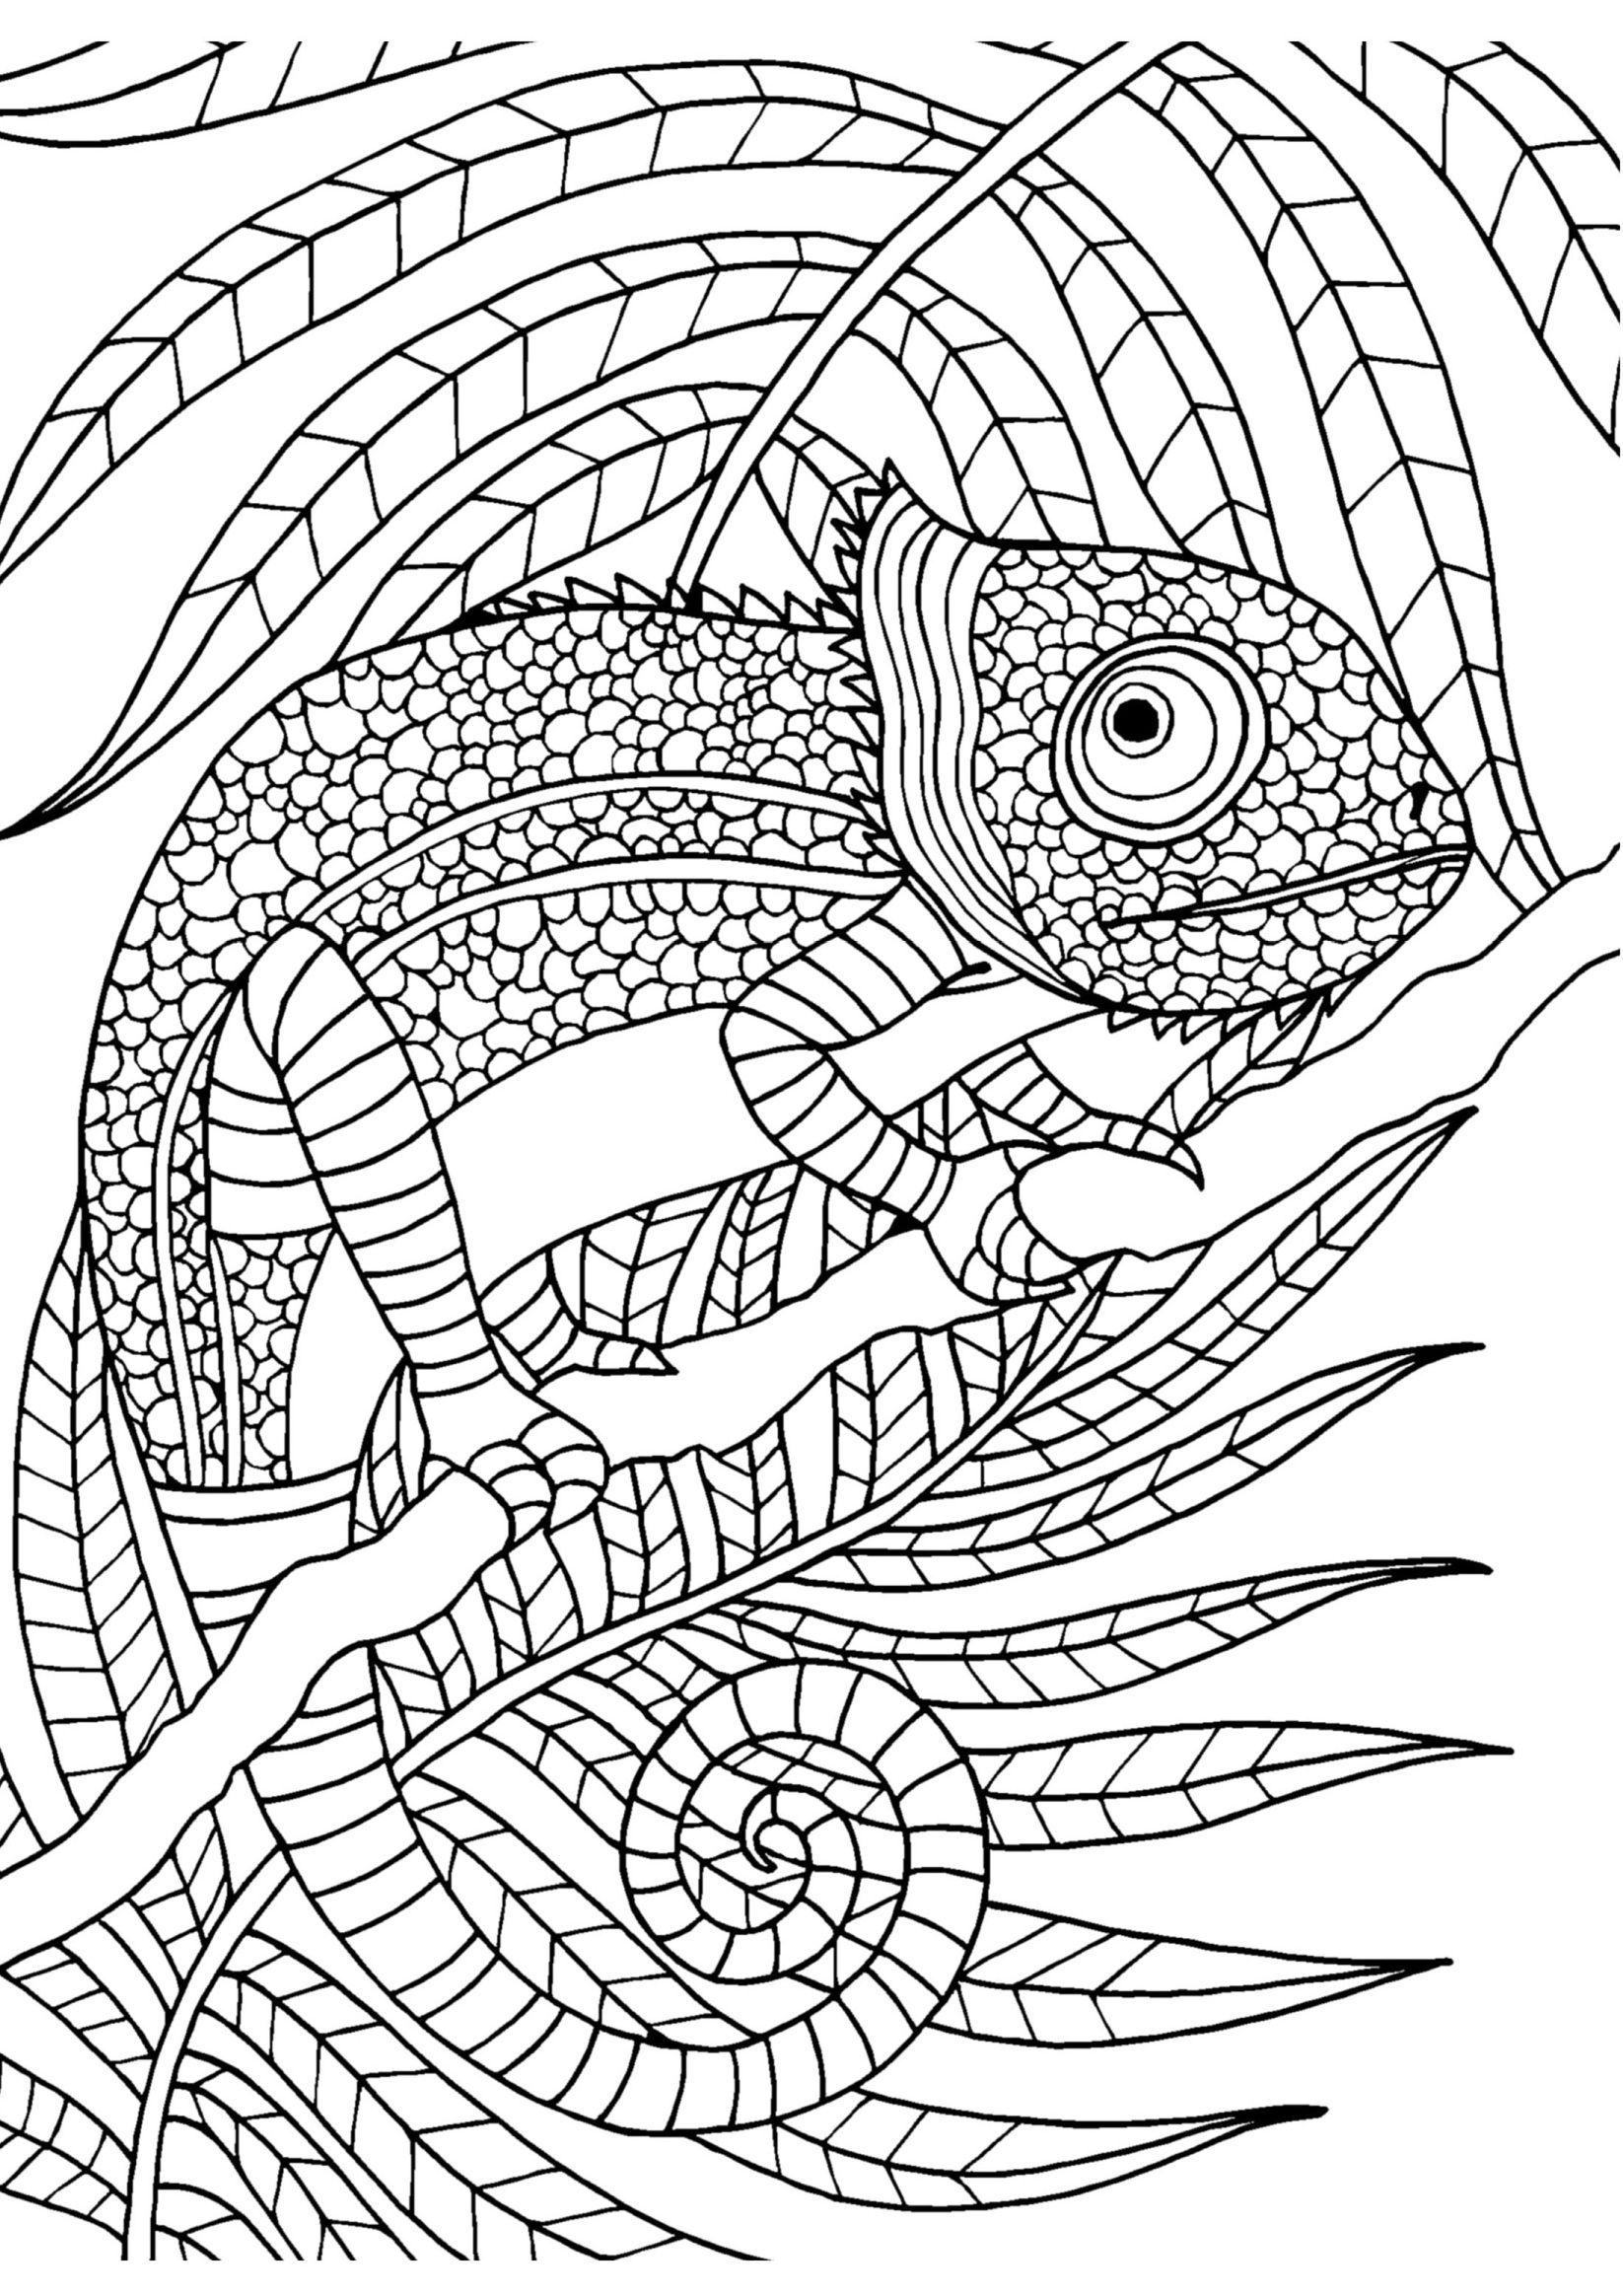 coloring pages for adults chameleon chameleon adult coloring page digital coloring pdf doodle for pages coloring chameleon adults